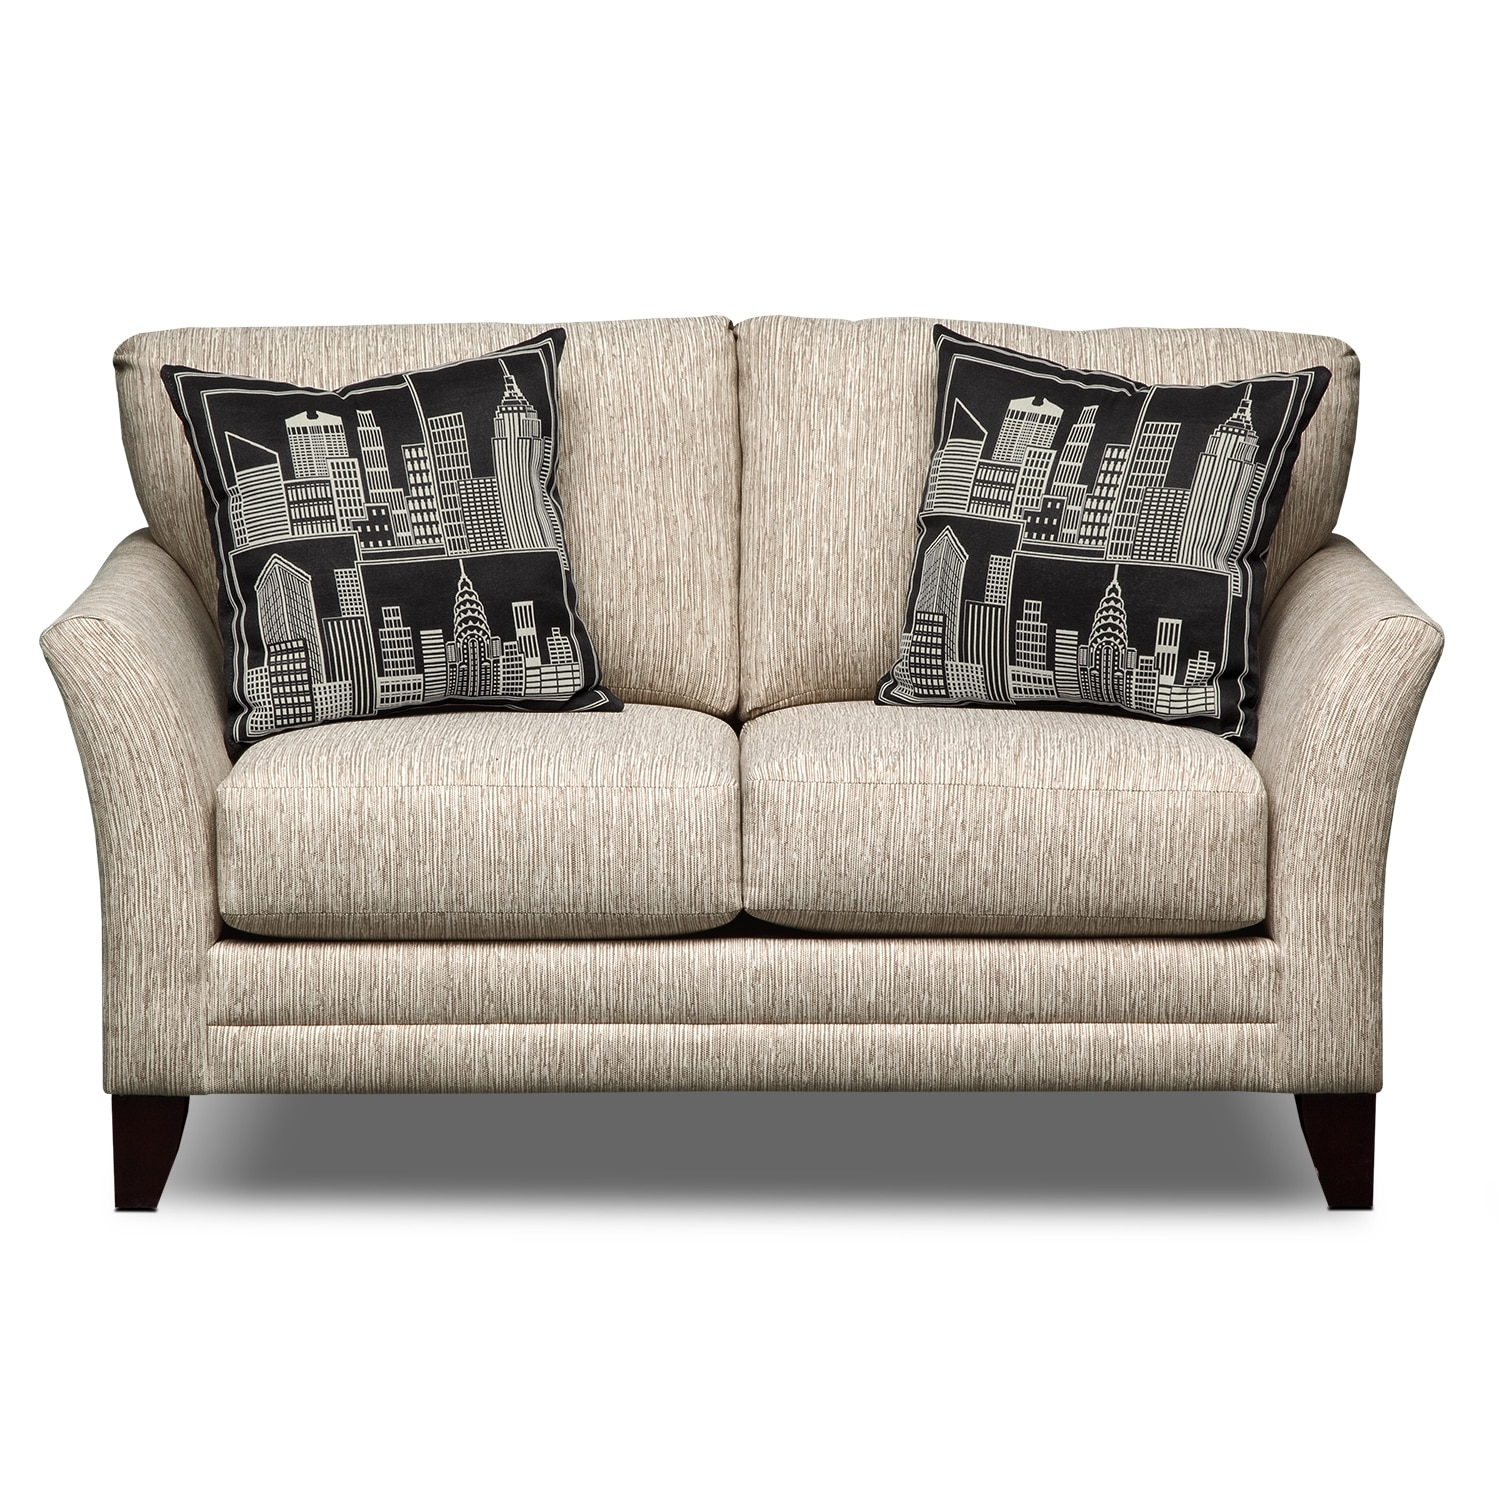 Union Square Upholstery Loveseat Value City Furniture